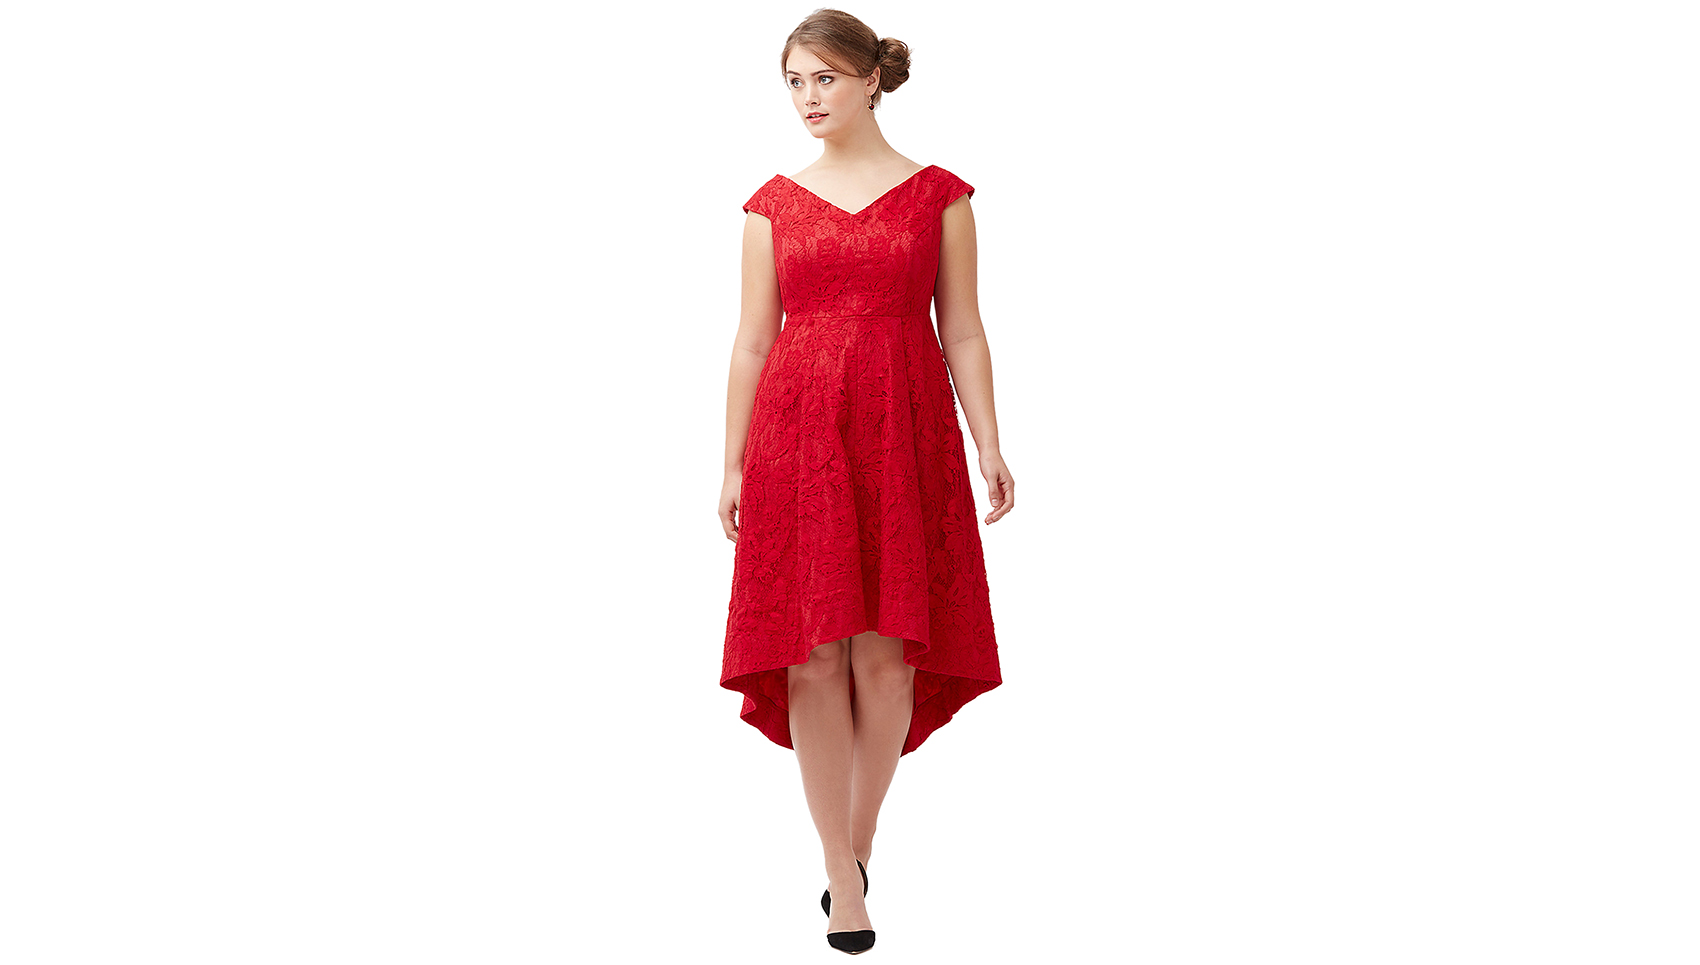 Lane Bryant Lily Fit & Flare Dress by Lela Rose